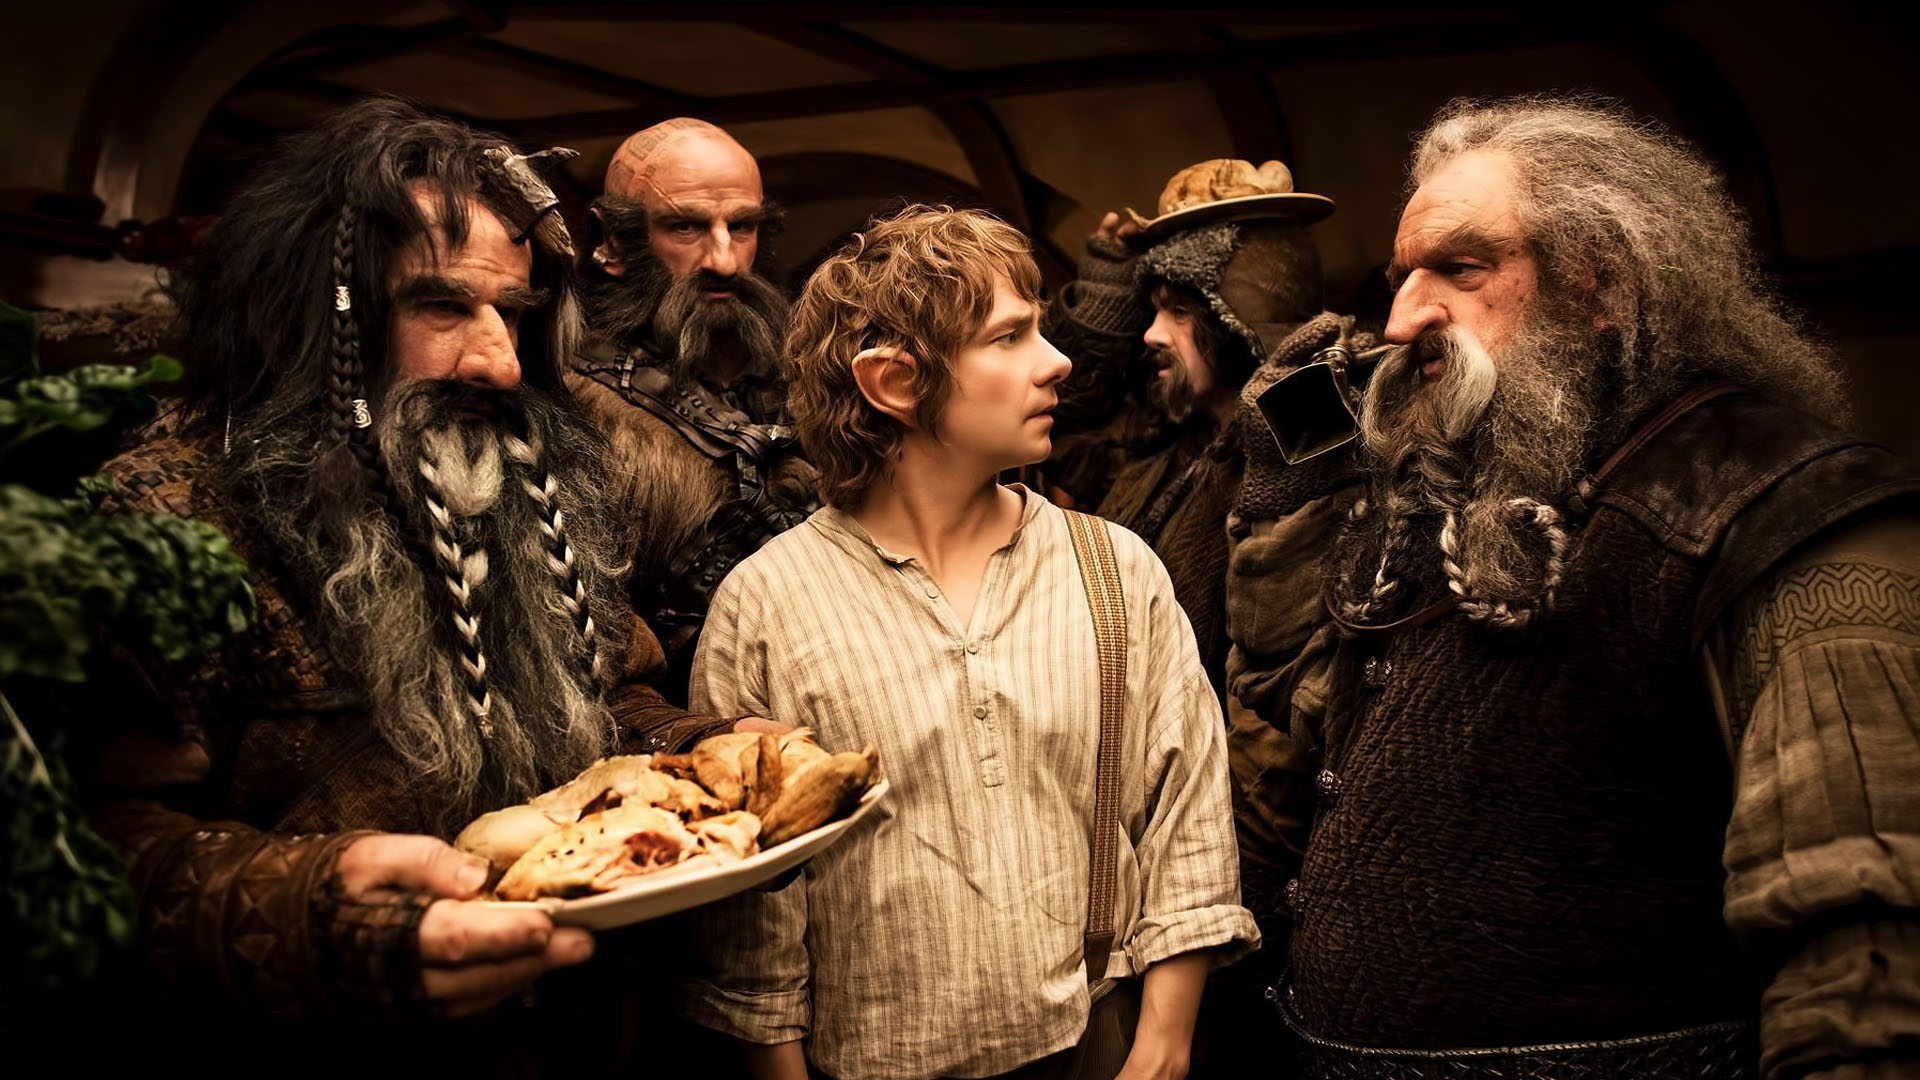 hobbit wallpaper journey unexpected wallpapers freebie 1920x1080